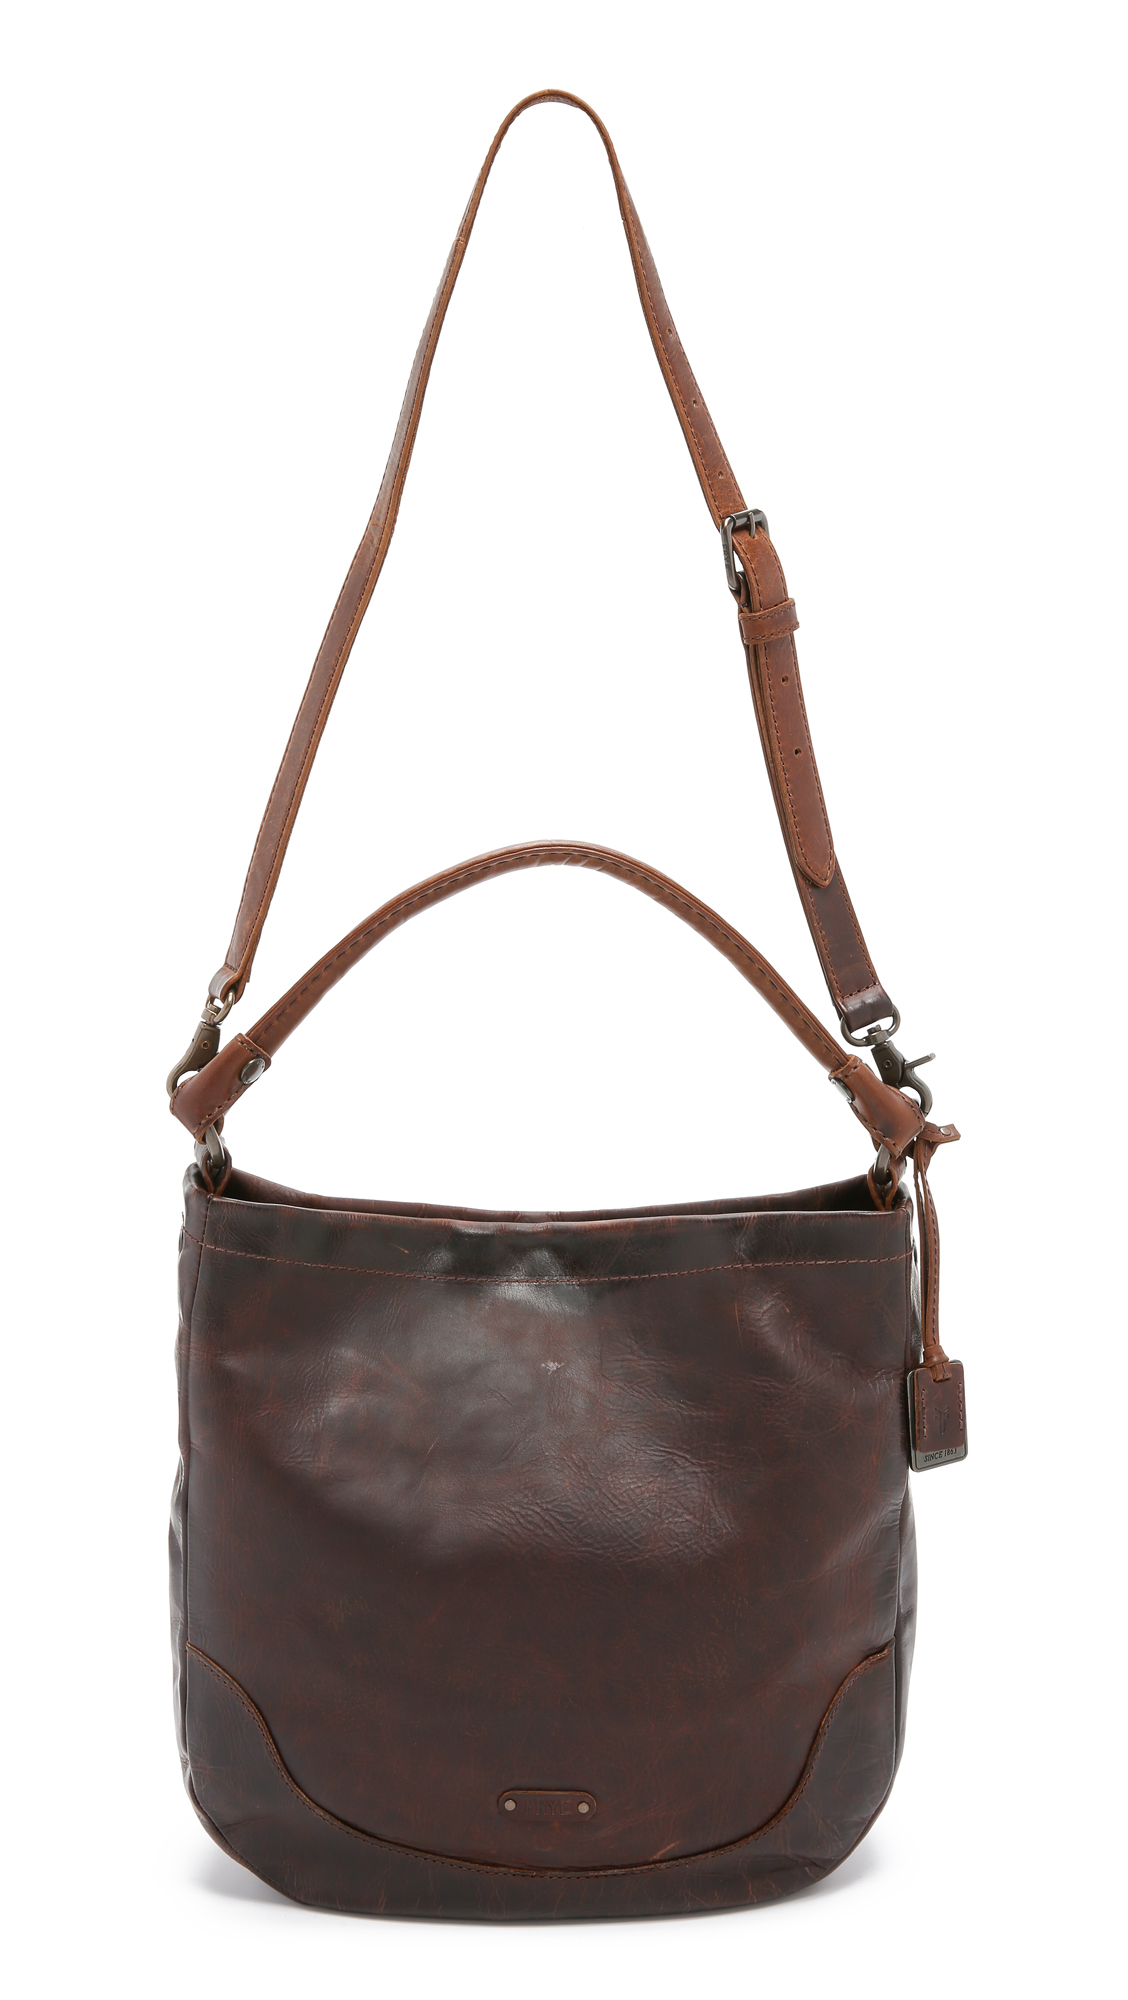 Frye Melissa Hobo Bag - Dark Brown in Brown | Lyst